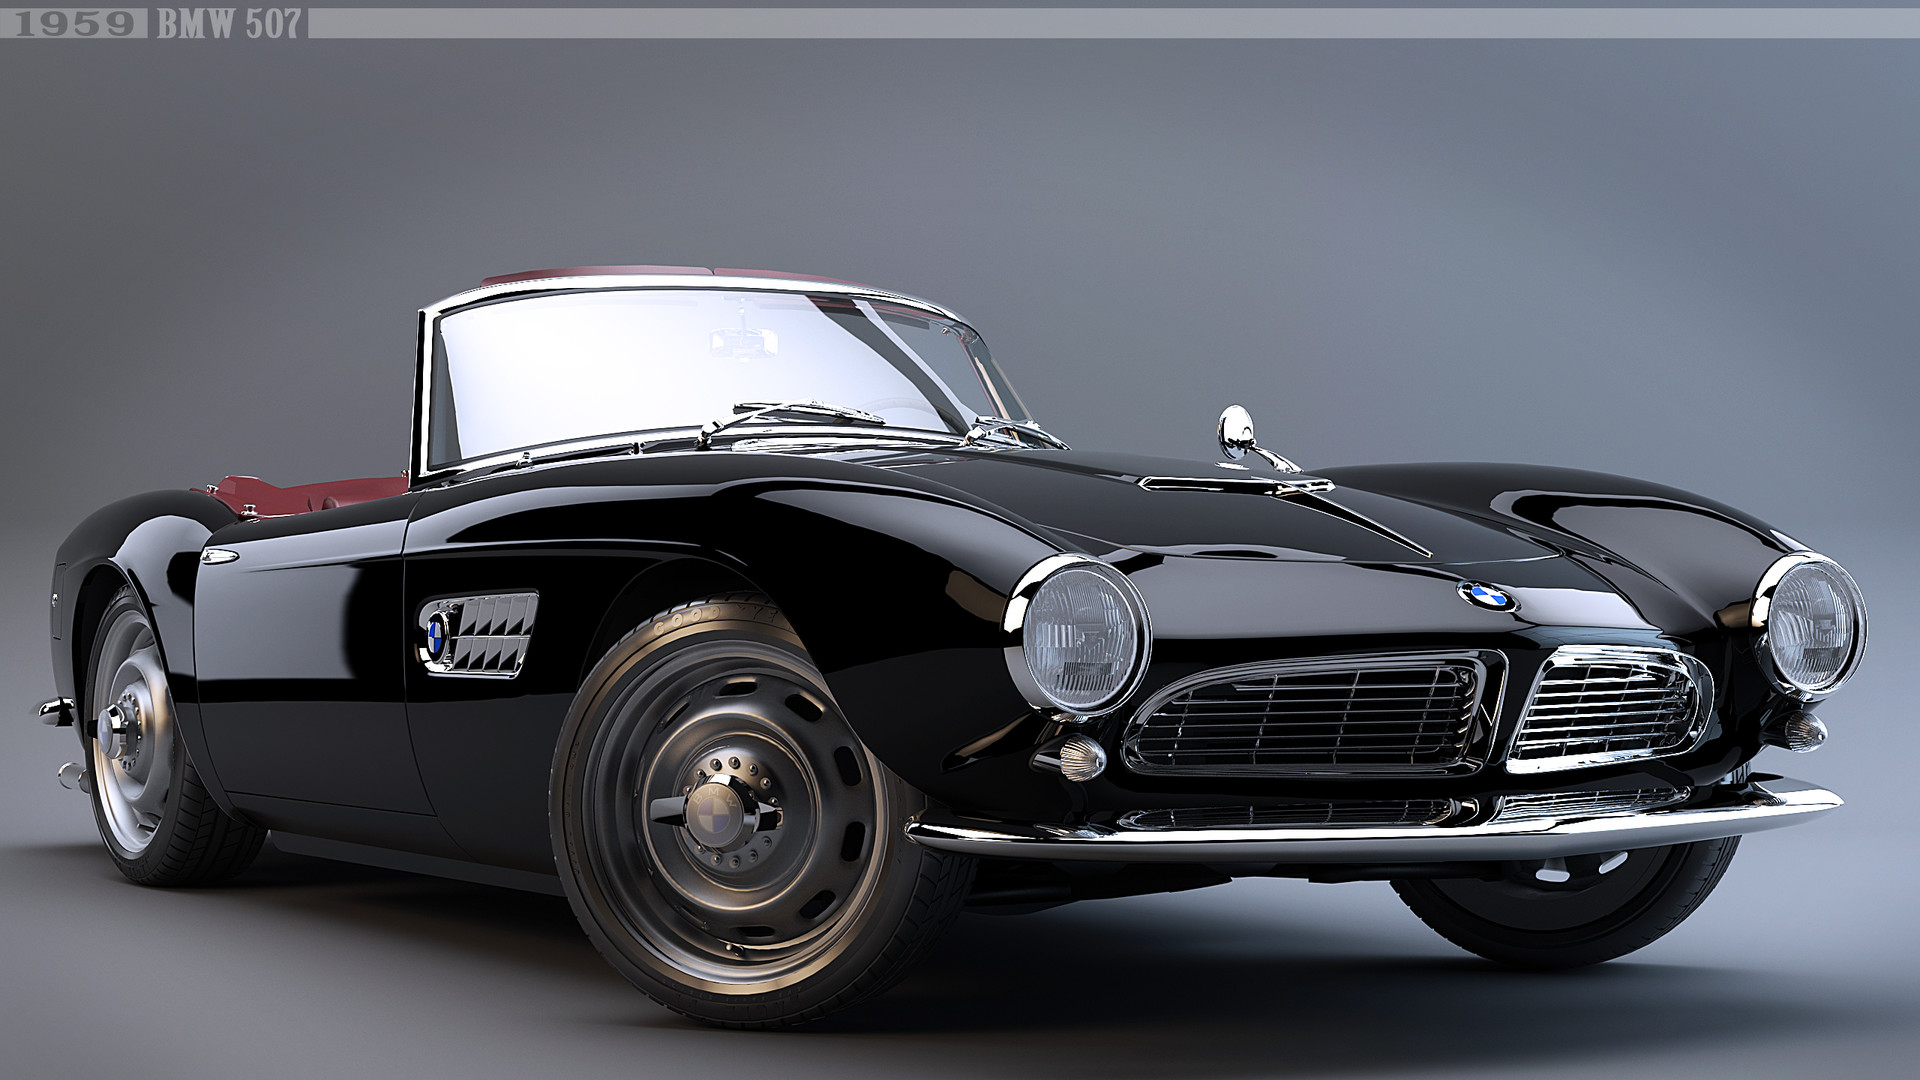 zoki nanco nancorocks 1959 bmw 507. Black Bedroom Furniture Sets. Home Design Ideas